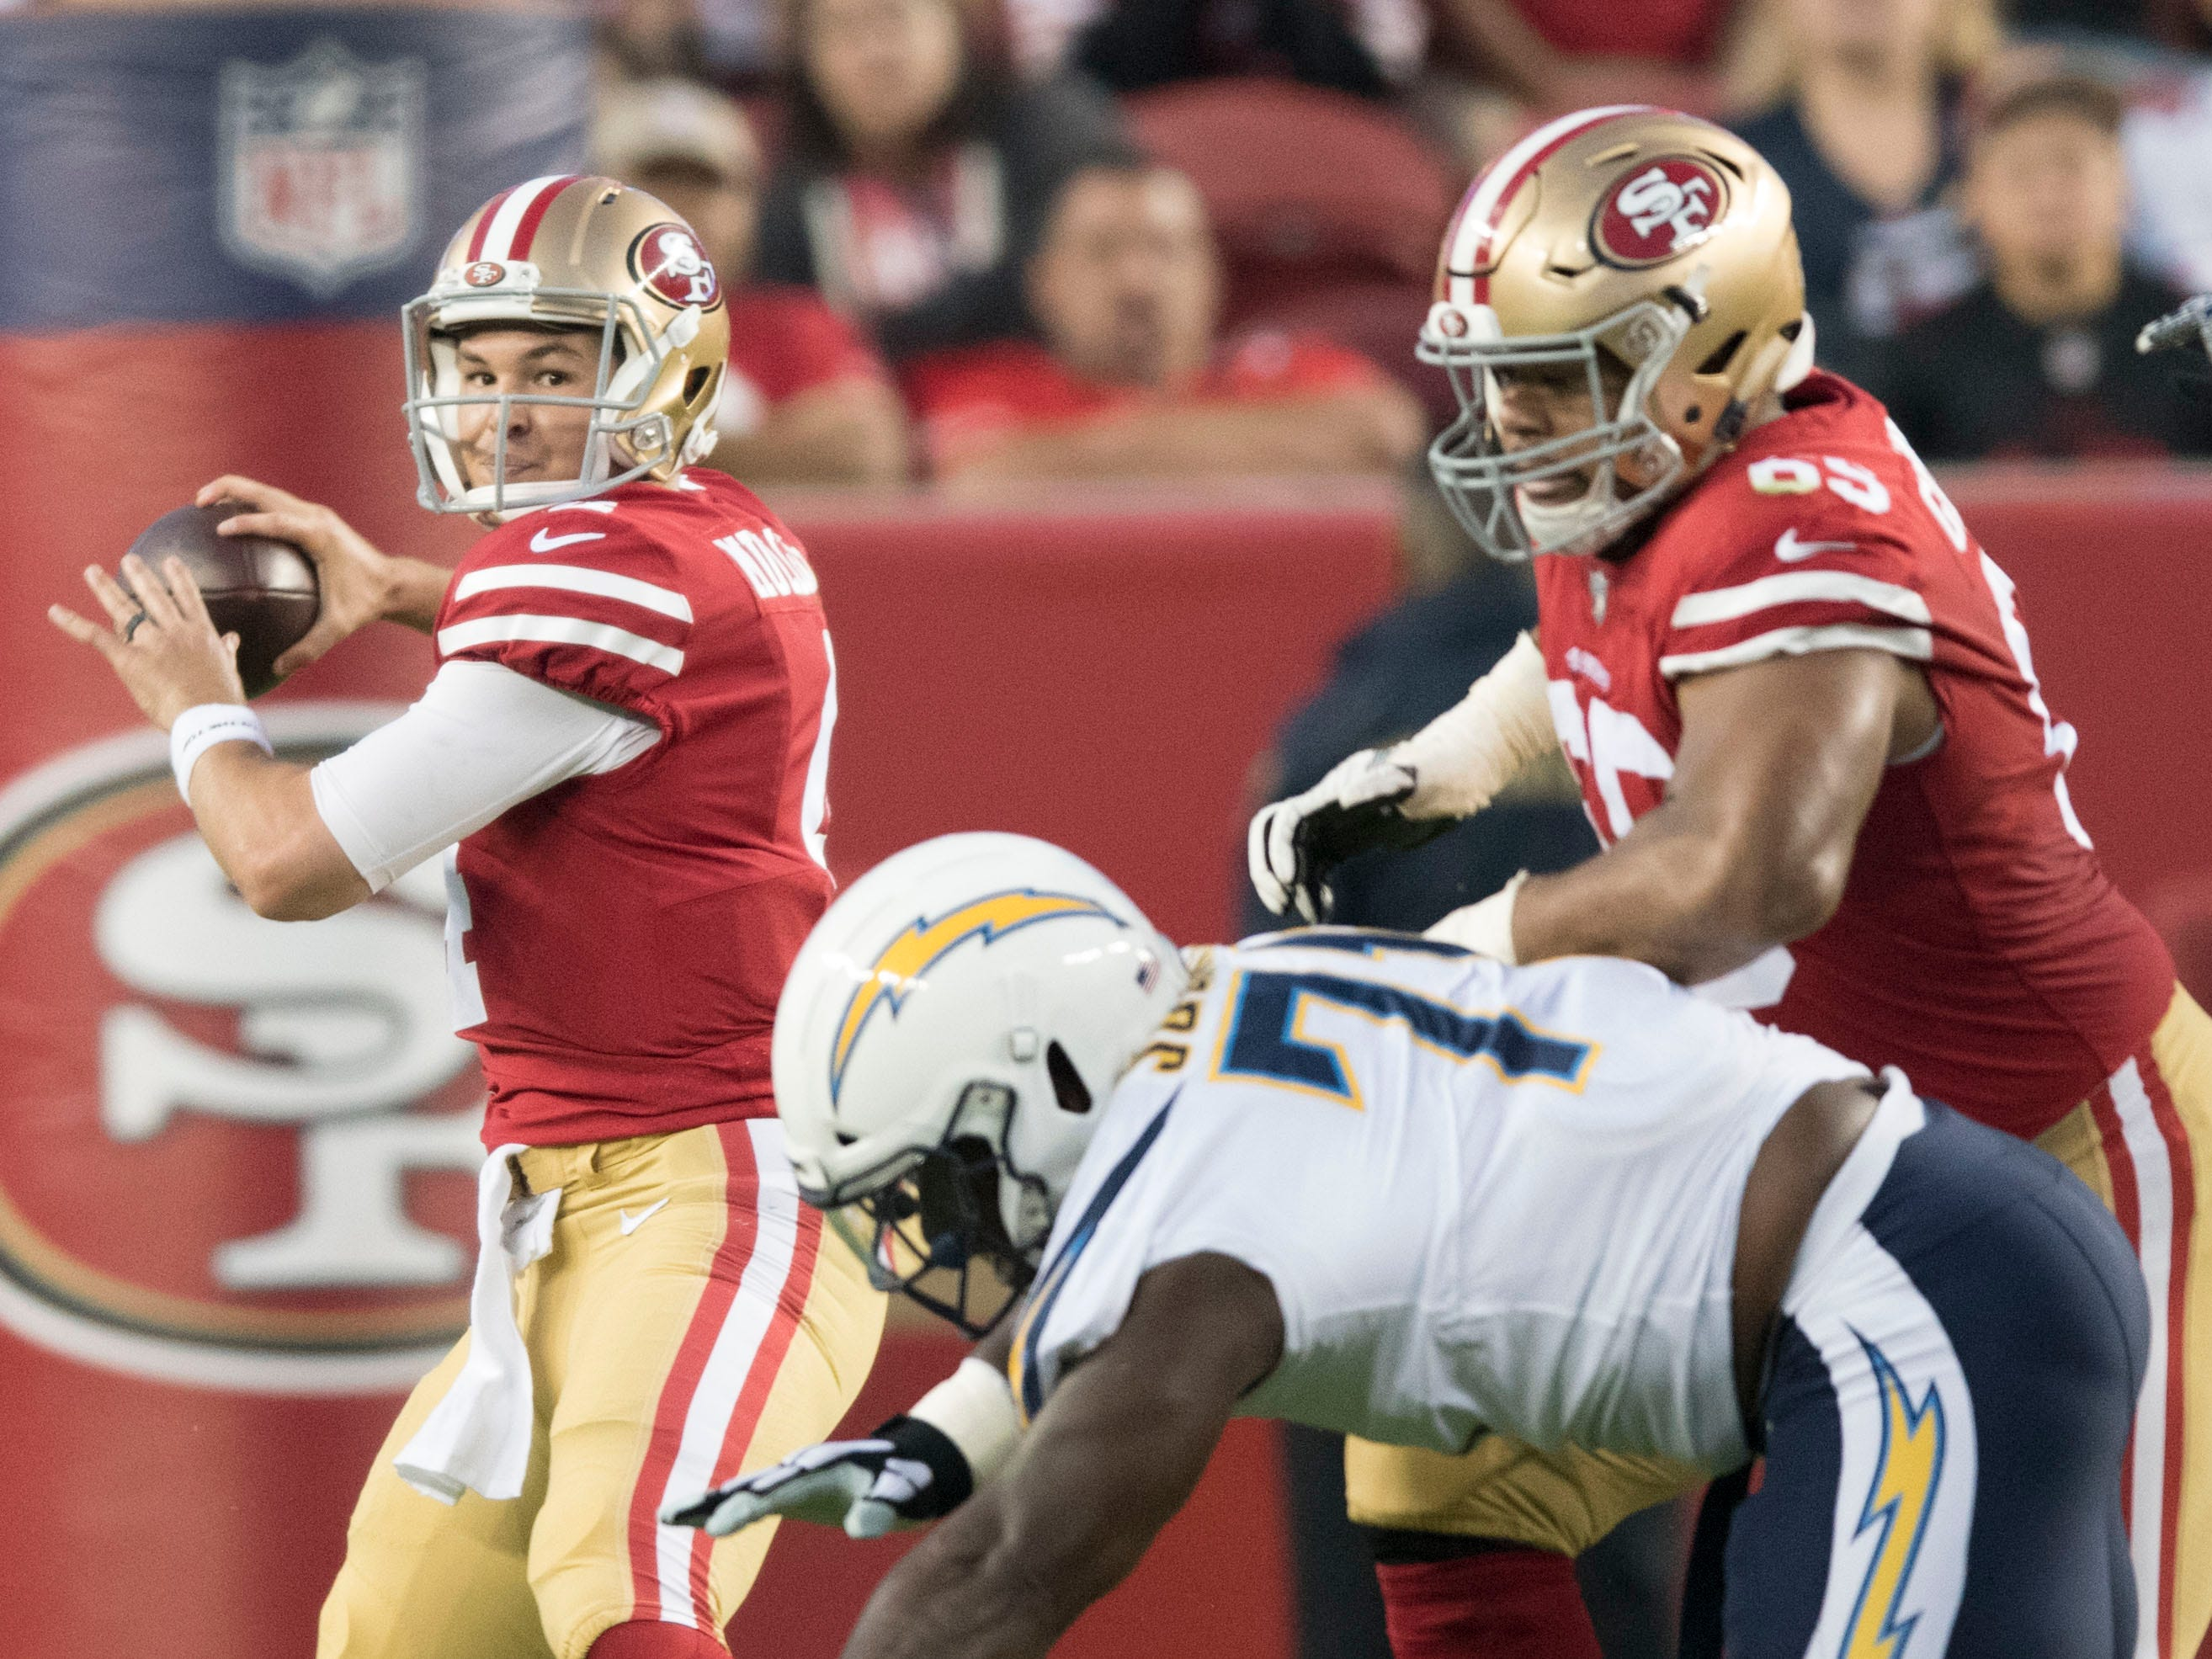 San Francisco 49ers quarterback Nick Mullens passes the football against the Los Angeles Chargers during the first quarter at Levi's Stadium.